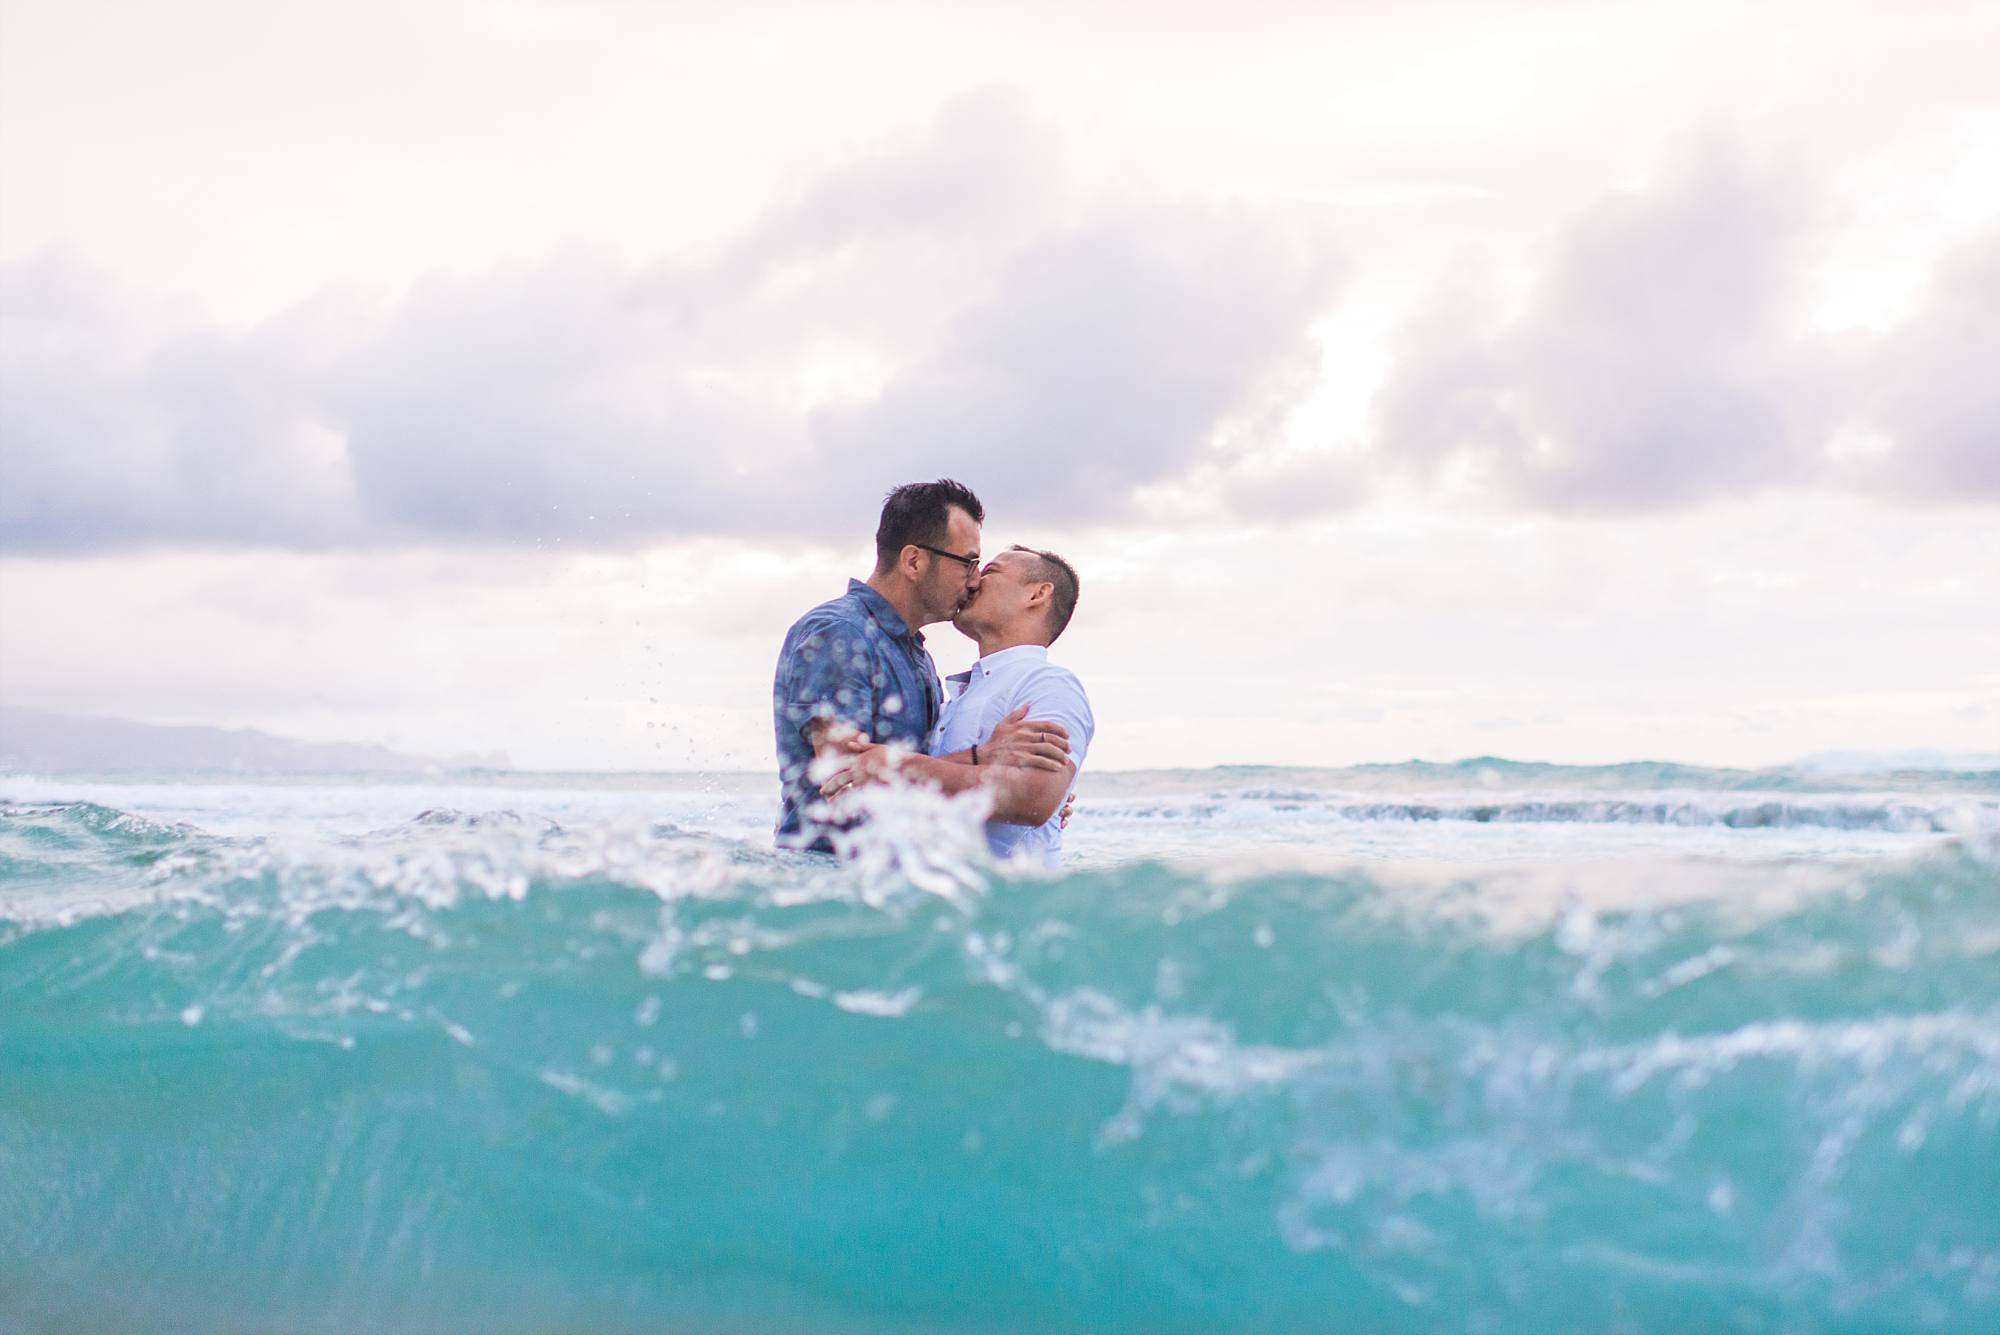 Fiances kissing while standing in the ocean and waves coming in